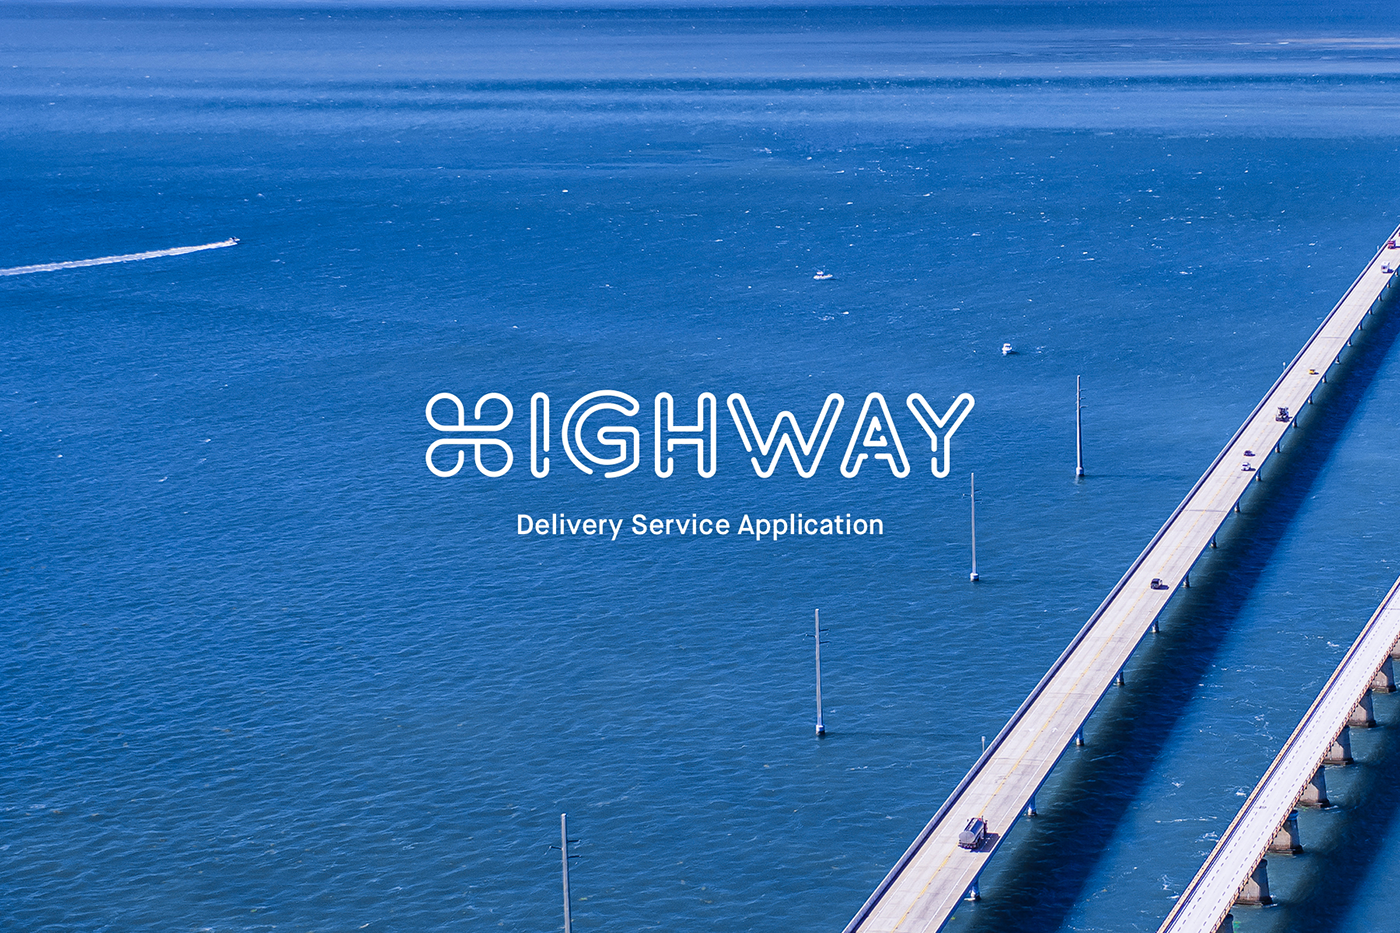 shipping application highway logo service android mobile